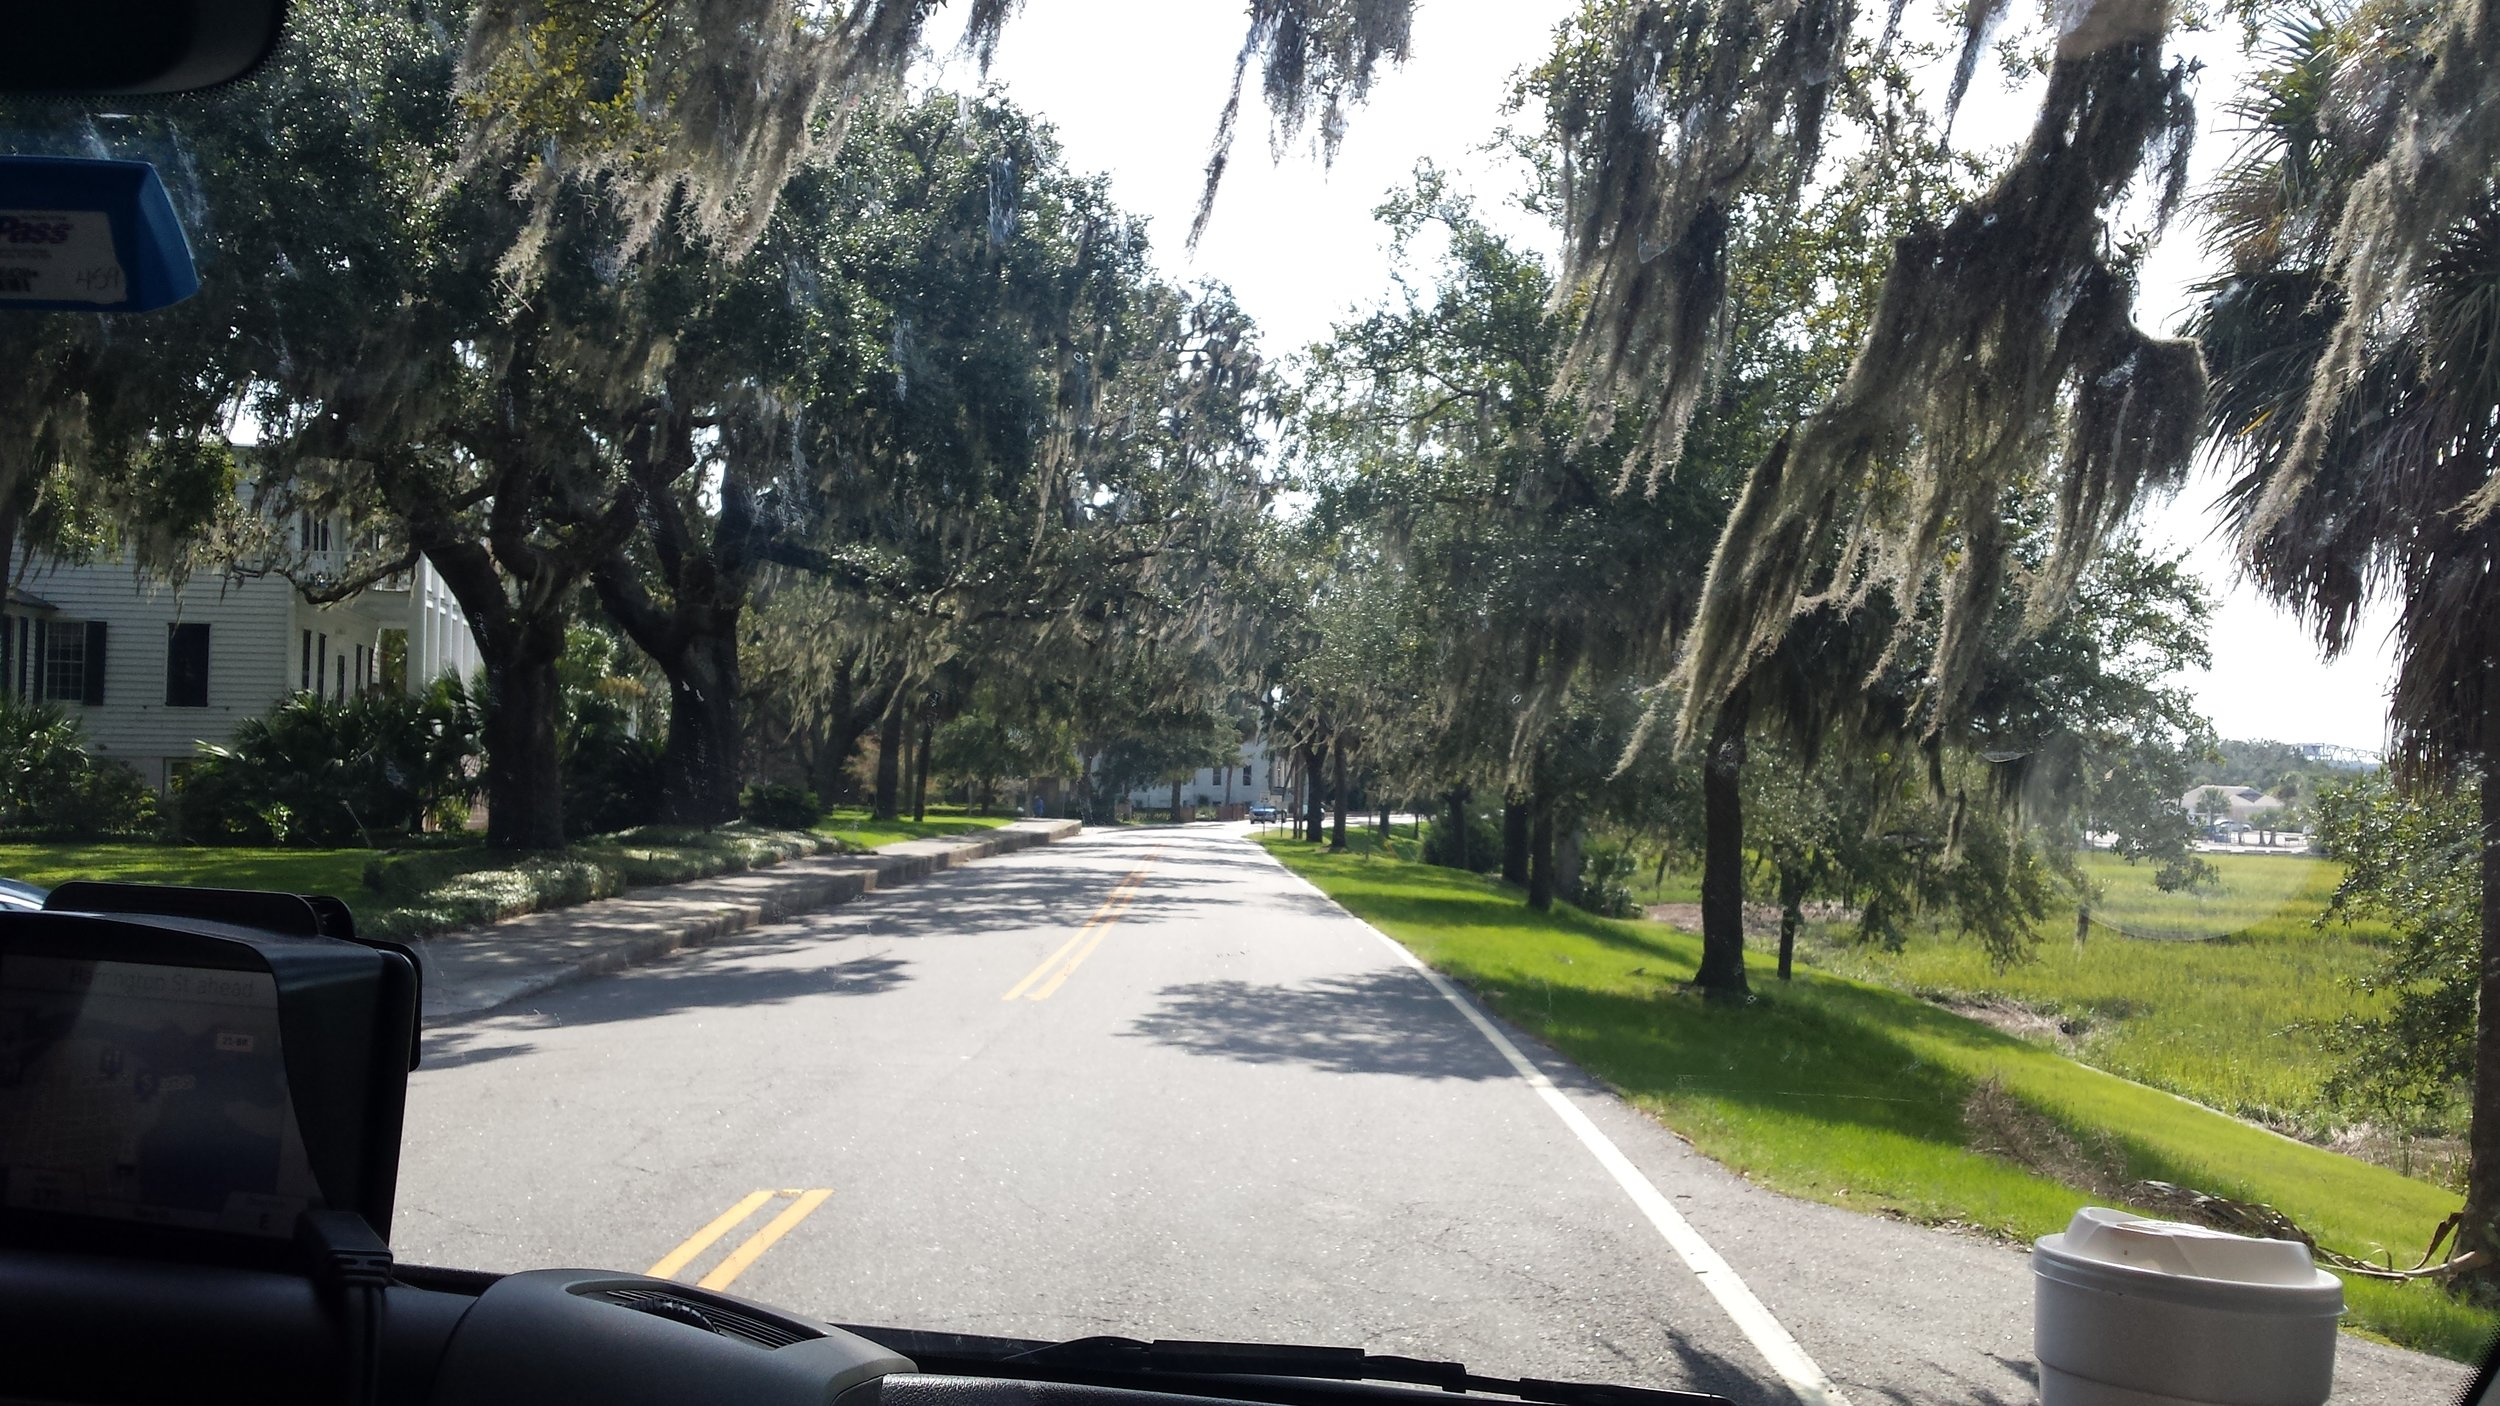 Spanish moss-draped trees in Beaufort, SC